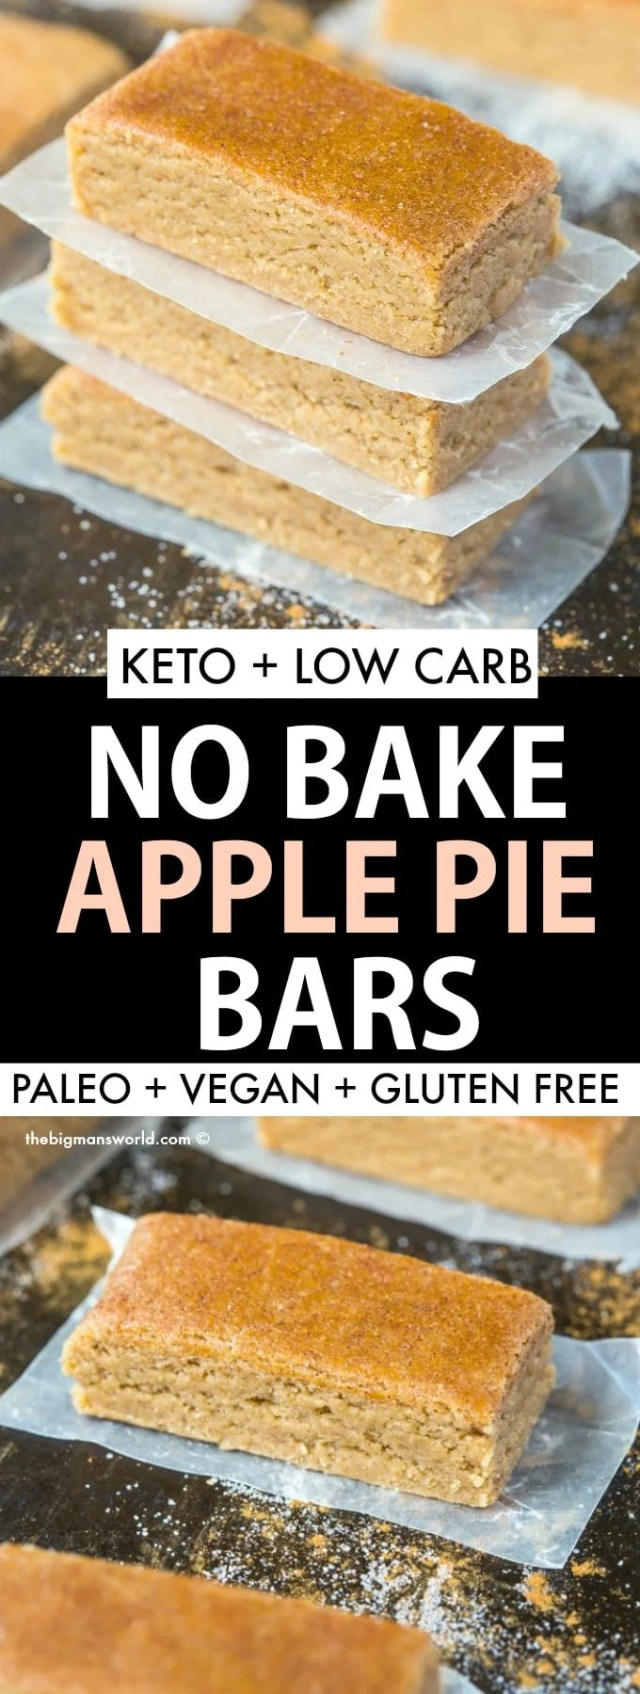 Easy no bake apple pie protein bars that are keto, vegan, paleo, and gluten free